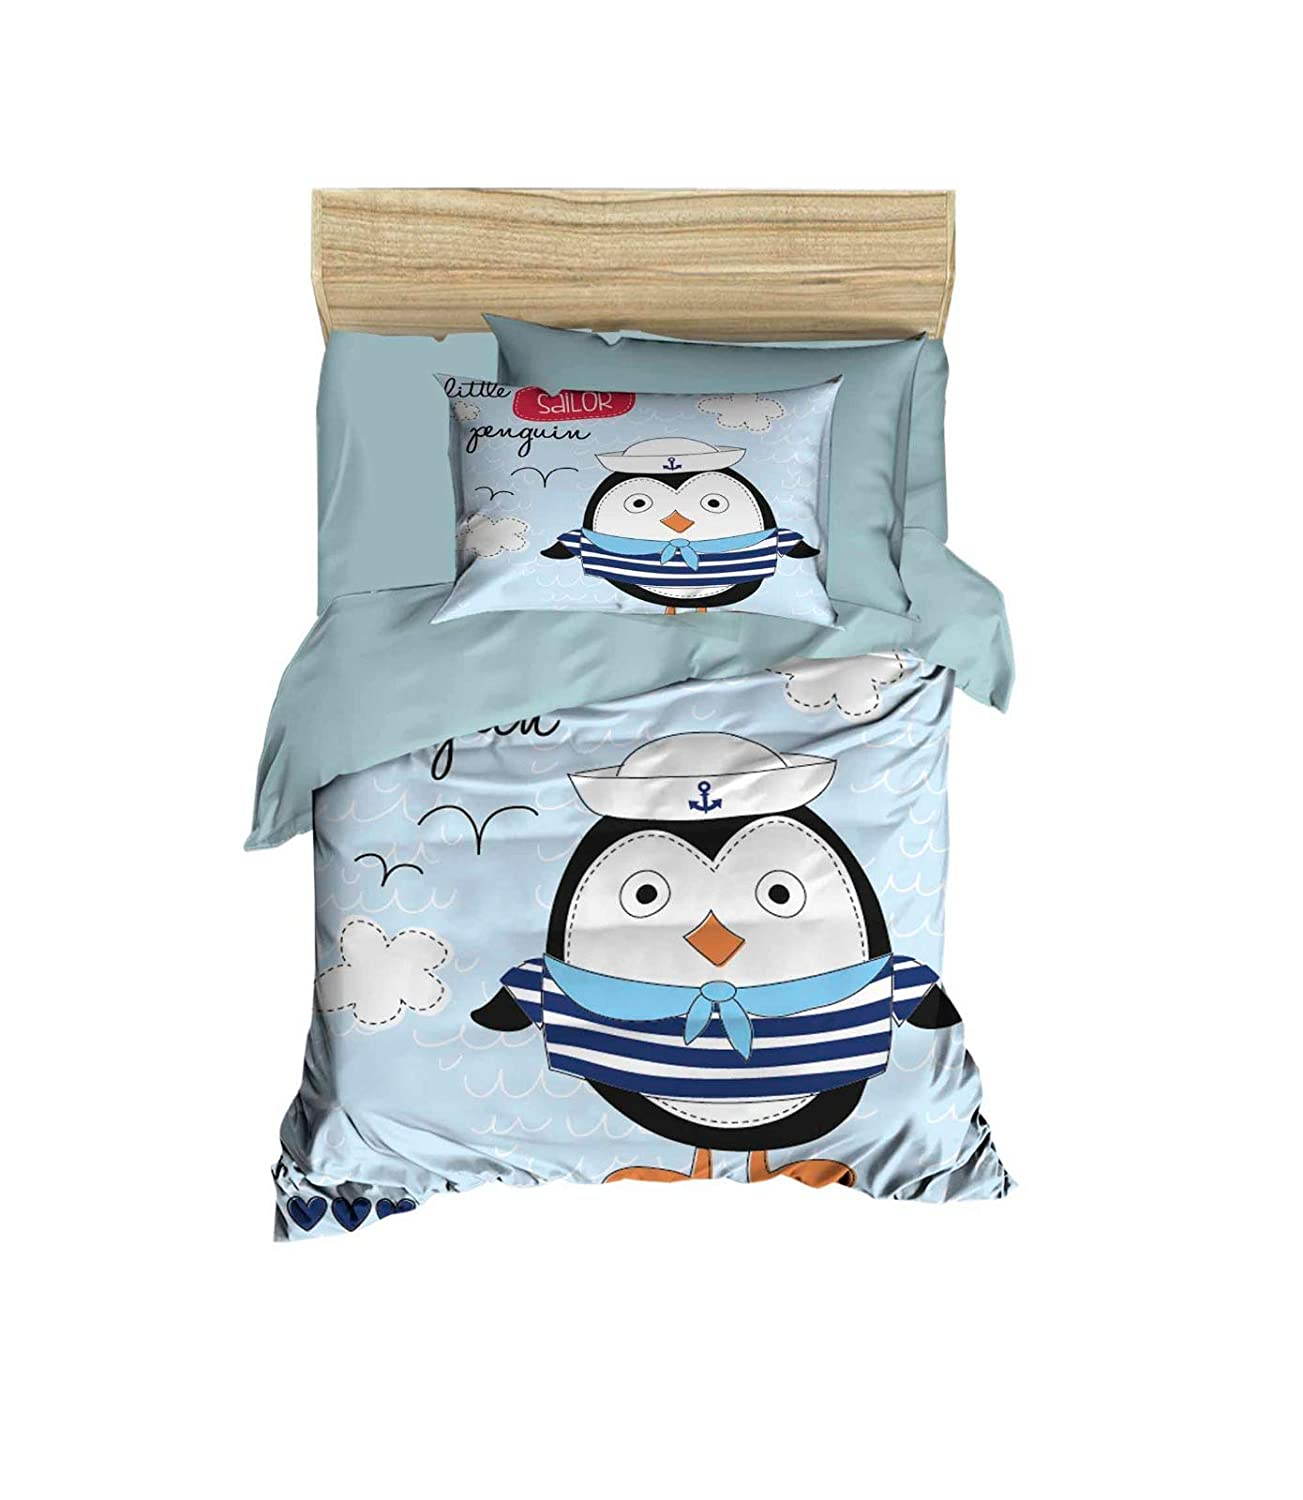 100% Cotton Baby Bedding Penguin Themed Nursery Baby Bett Set, Toddlers Crib Bedding for Baby Boys, Duvet Cover Satz with Comforter, 5 Pieces